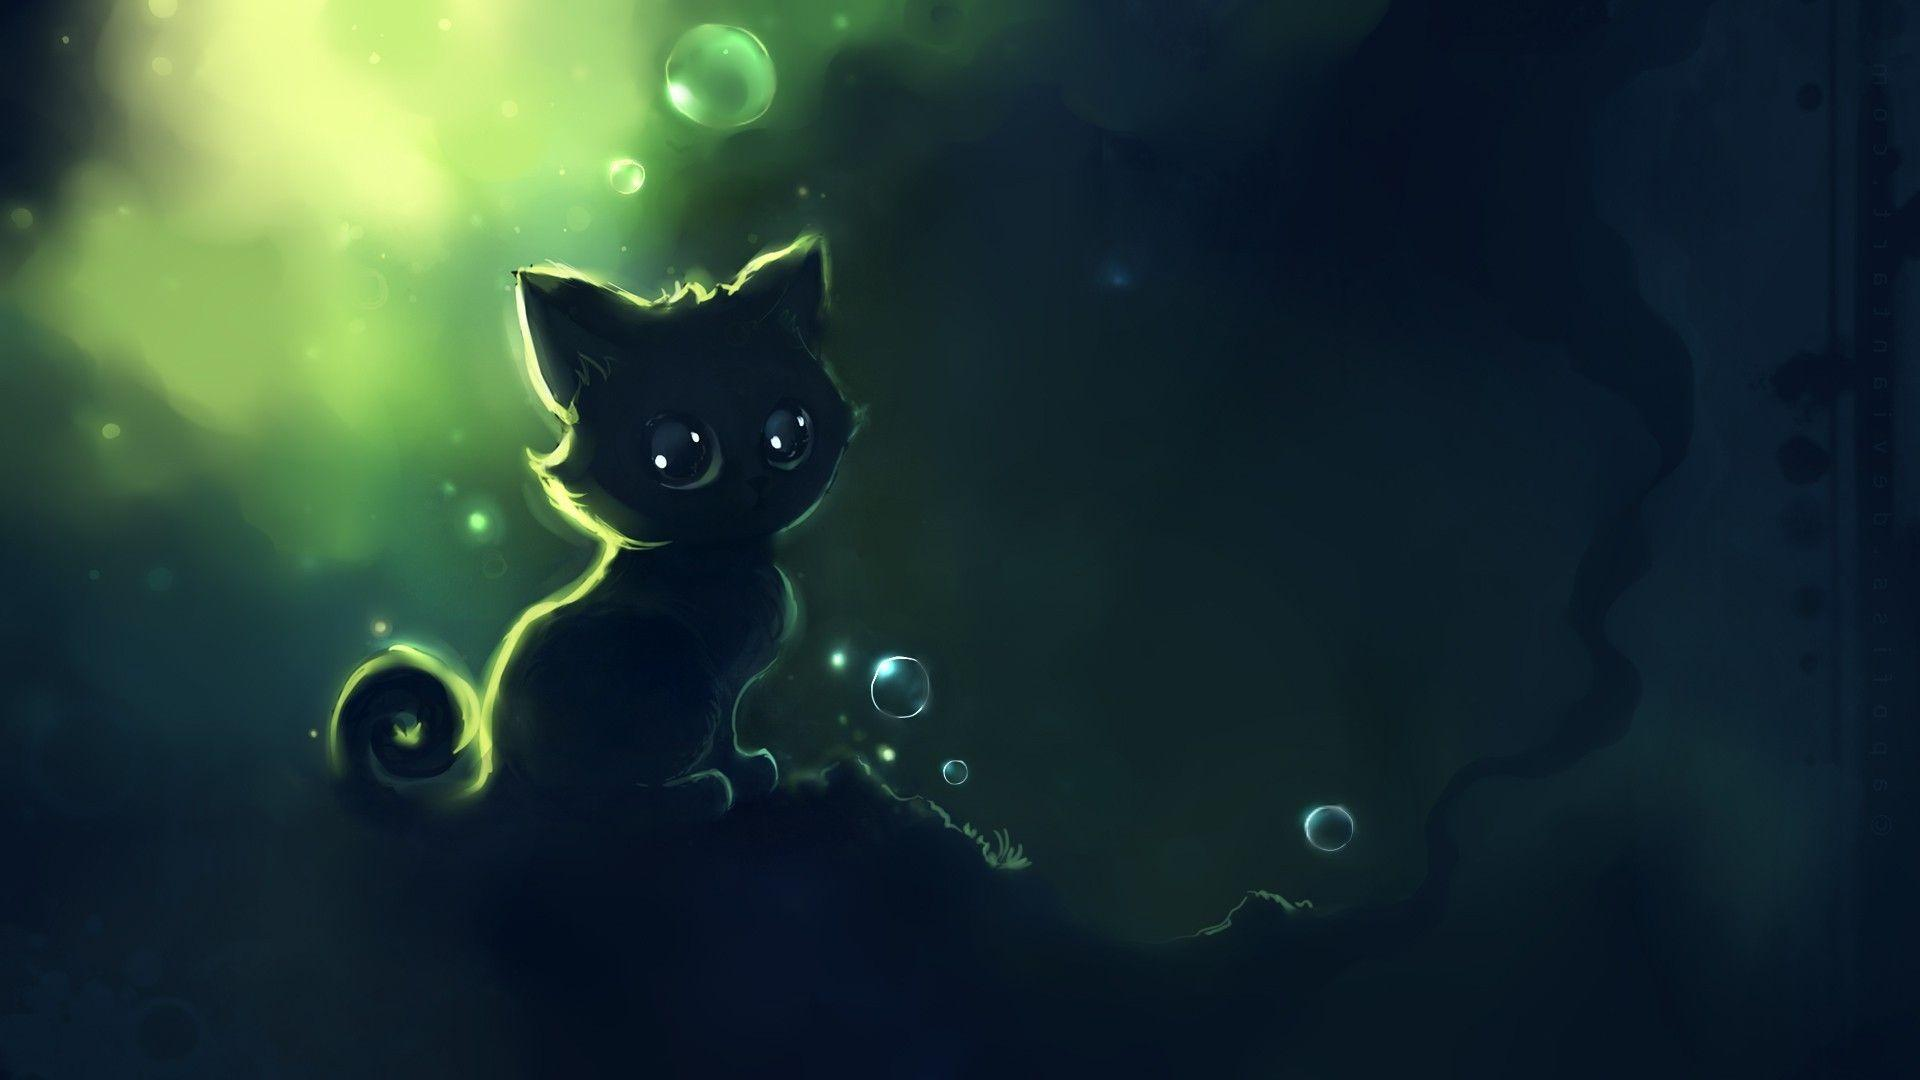 Cute Kitty Cat Anime Wallpapers Wallpaper Cave